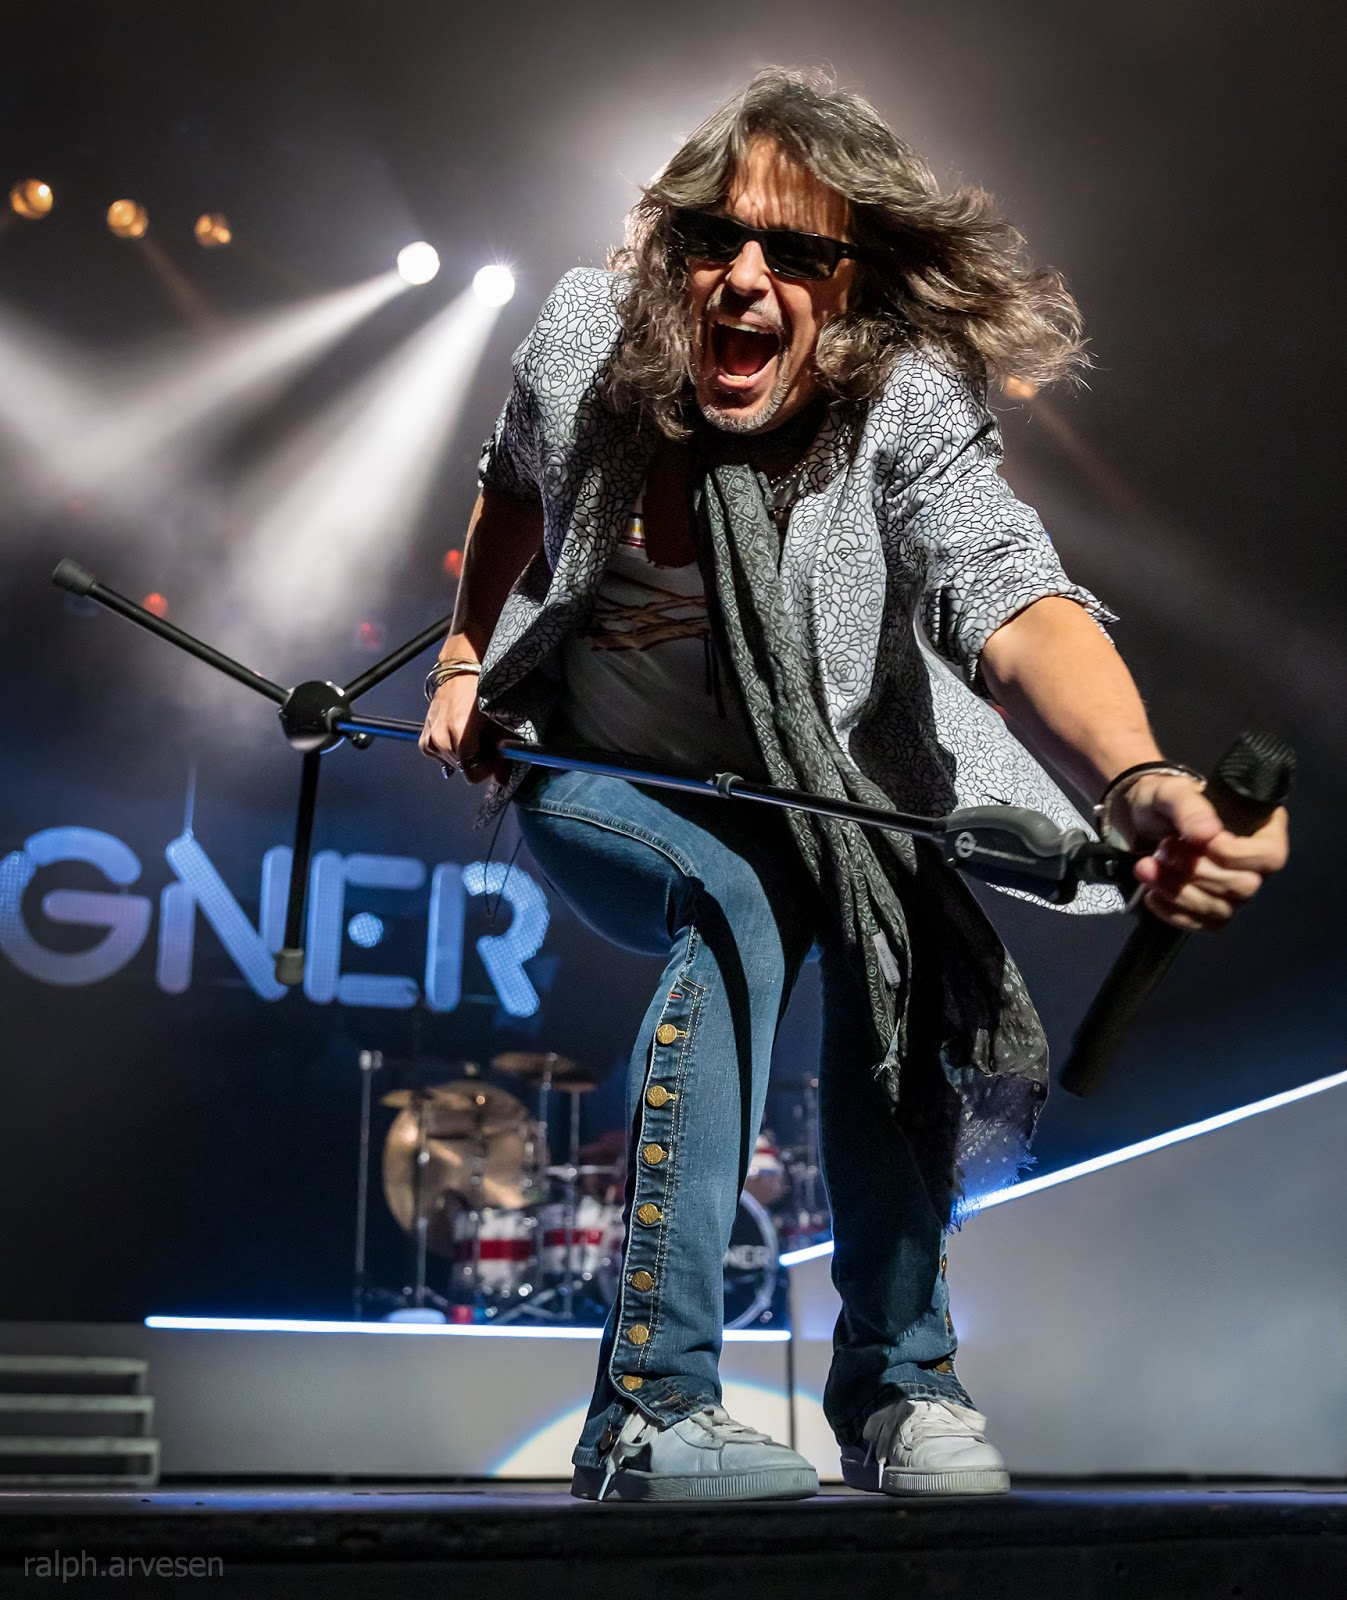 Foreigner | Texas Review | Ralph Arvesen